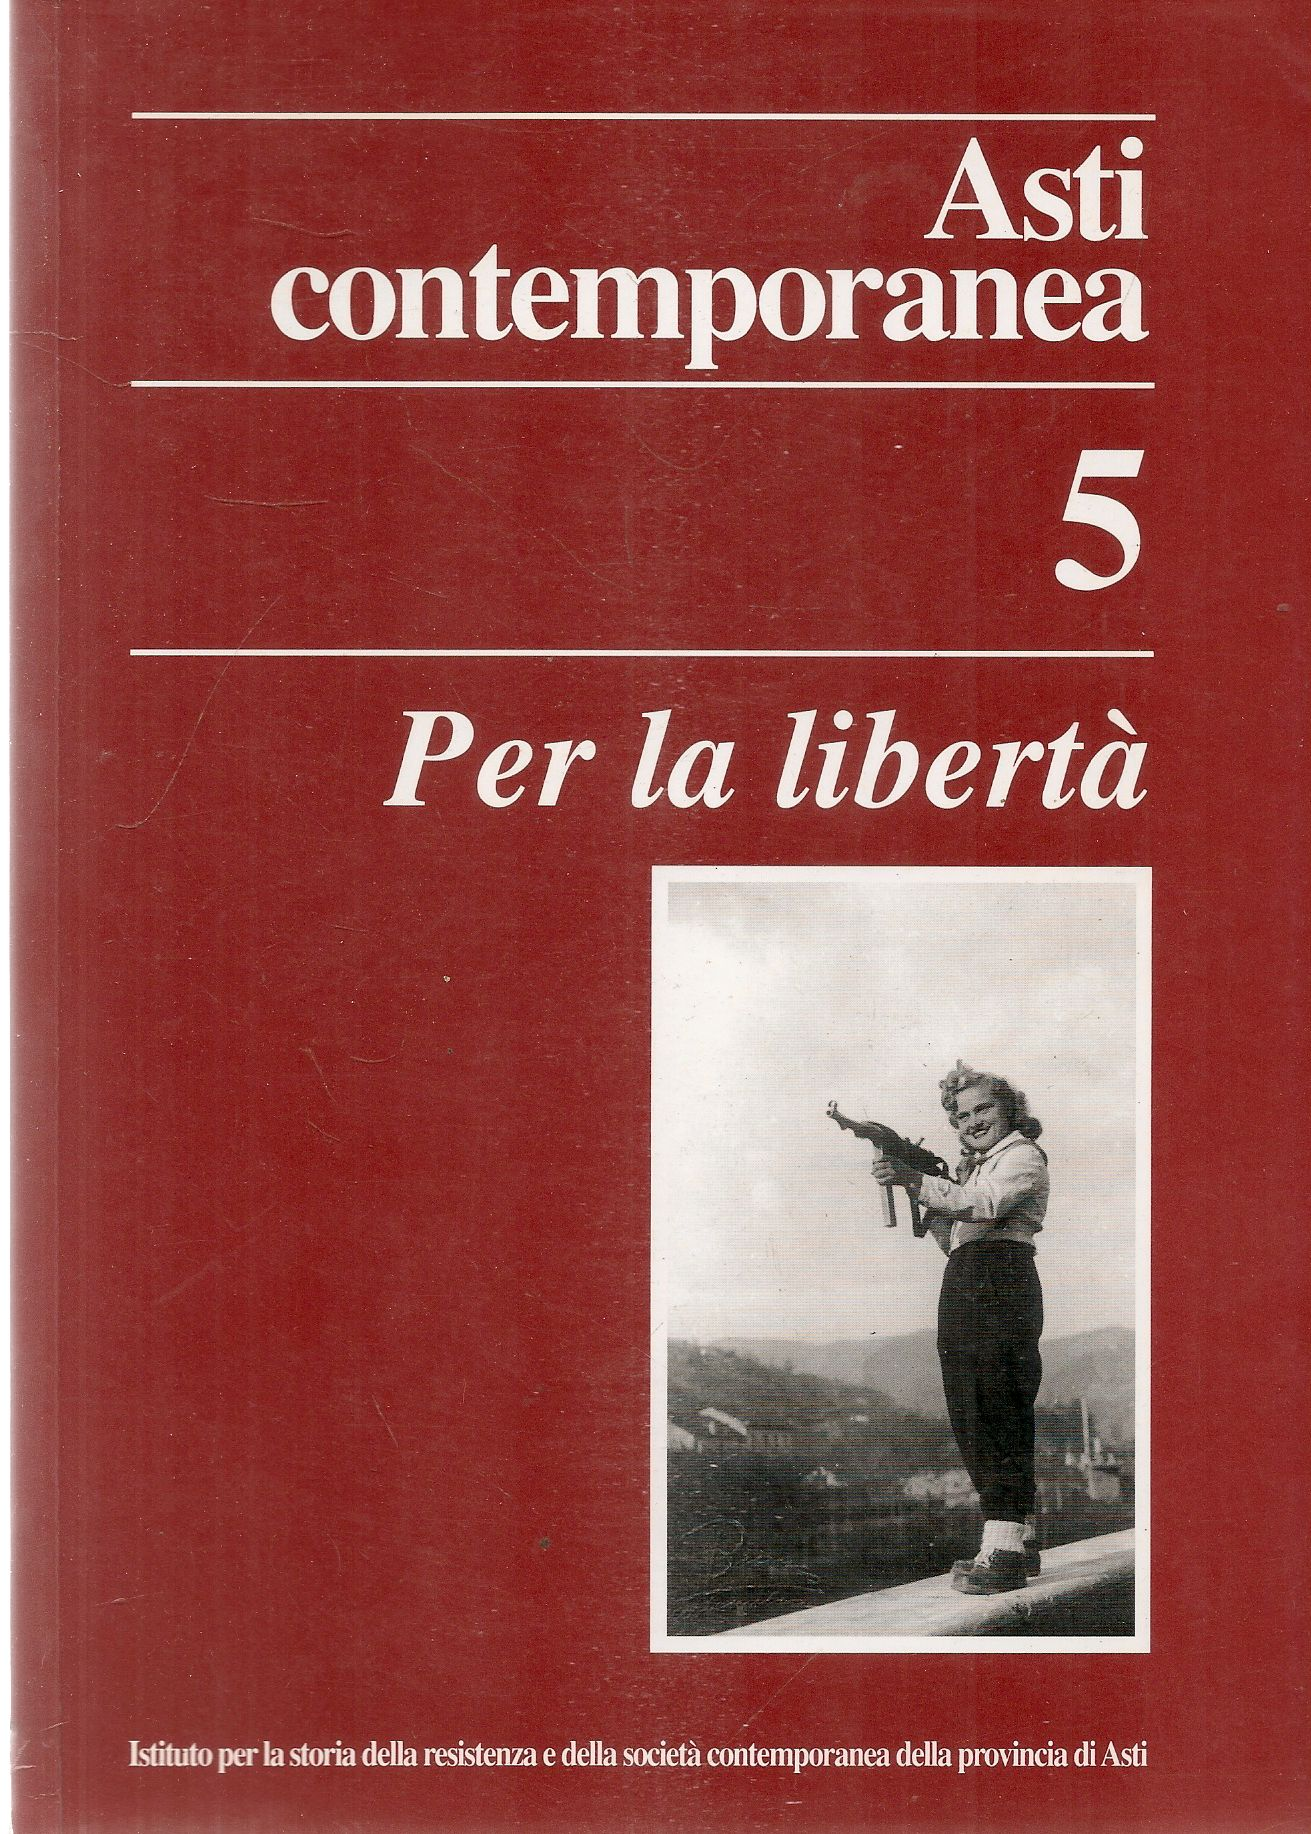 ASTI CONTEMPORANEA N. 5